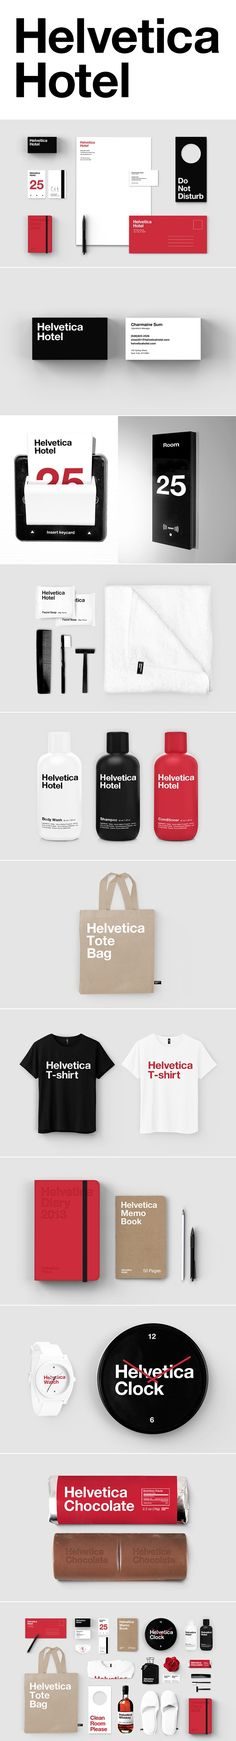 Designer Re-imagined Helvetica as a Hotel